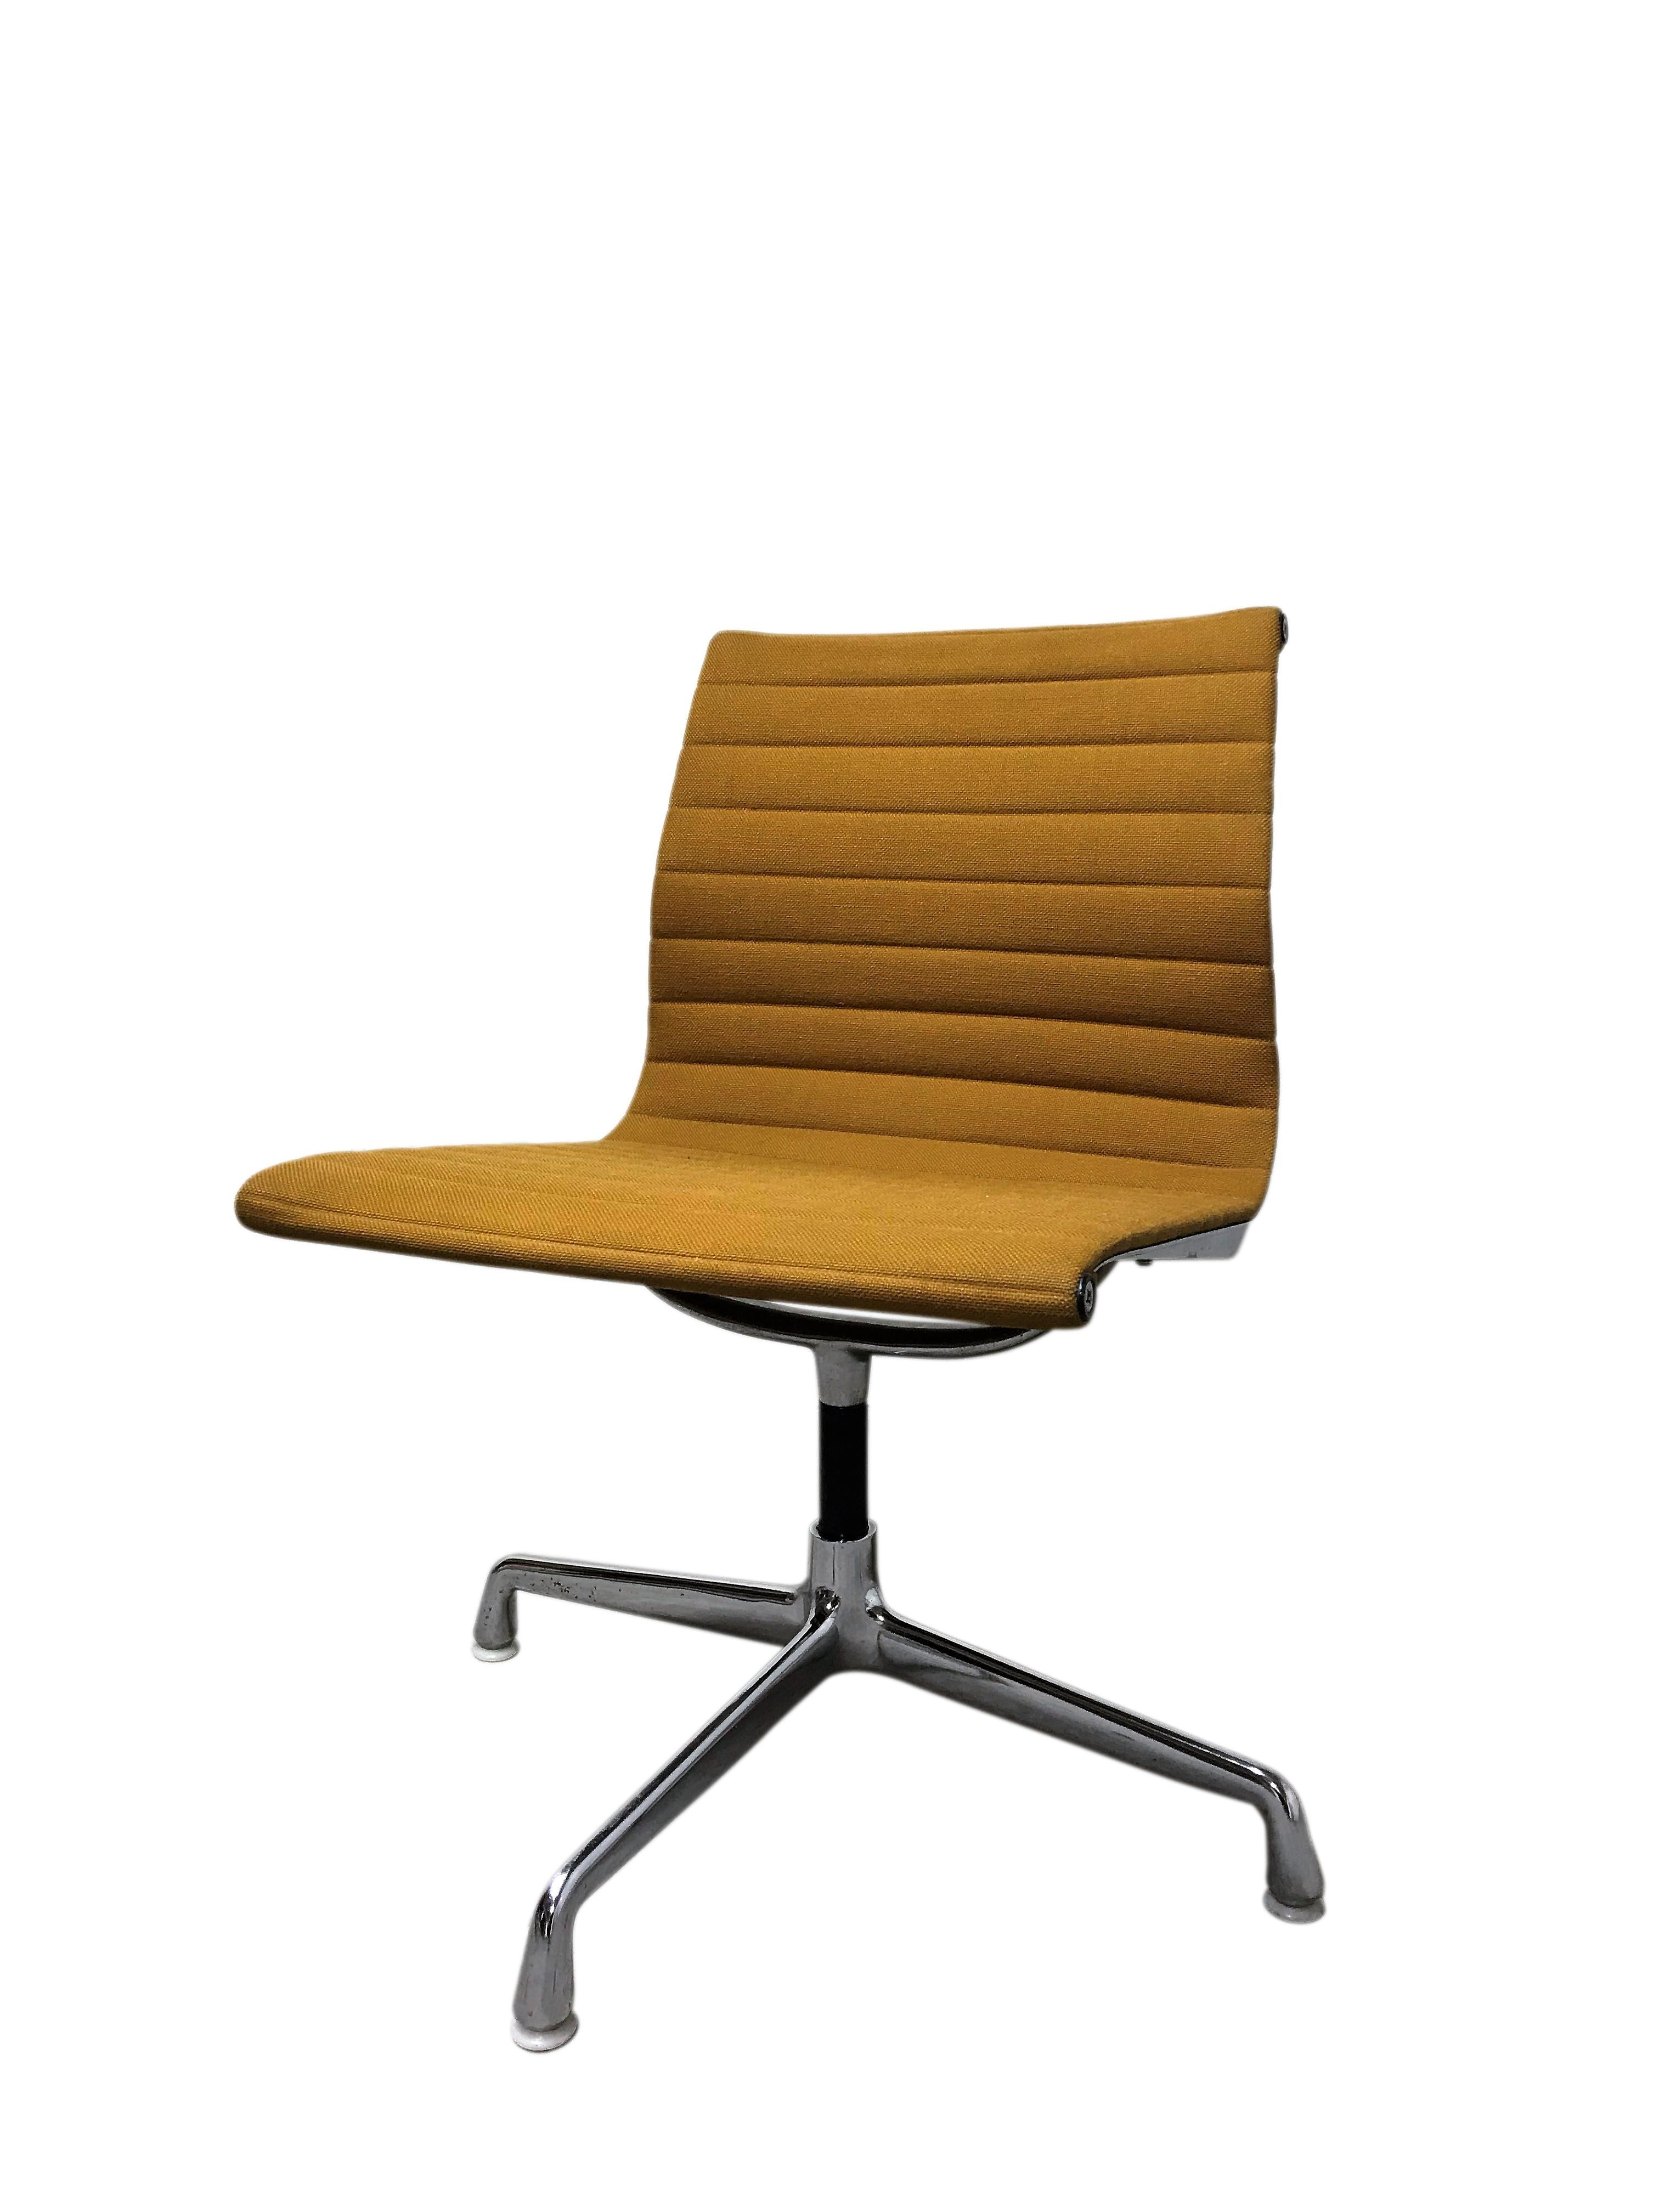 Eames Desk Chair Vintage Eames Desk Chair Ea108 For Herman Miller Yellow 1970s